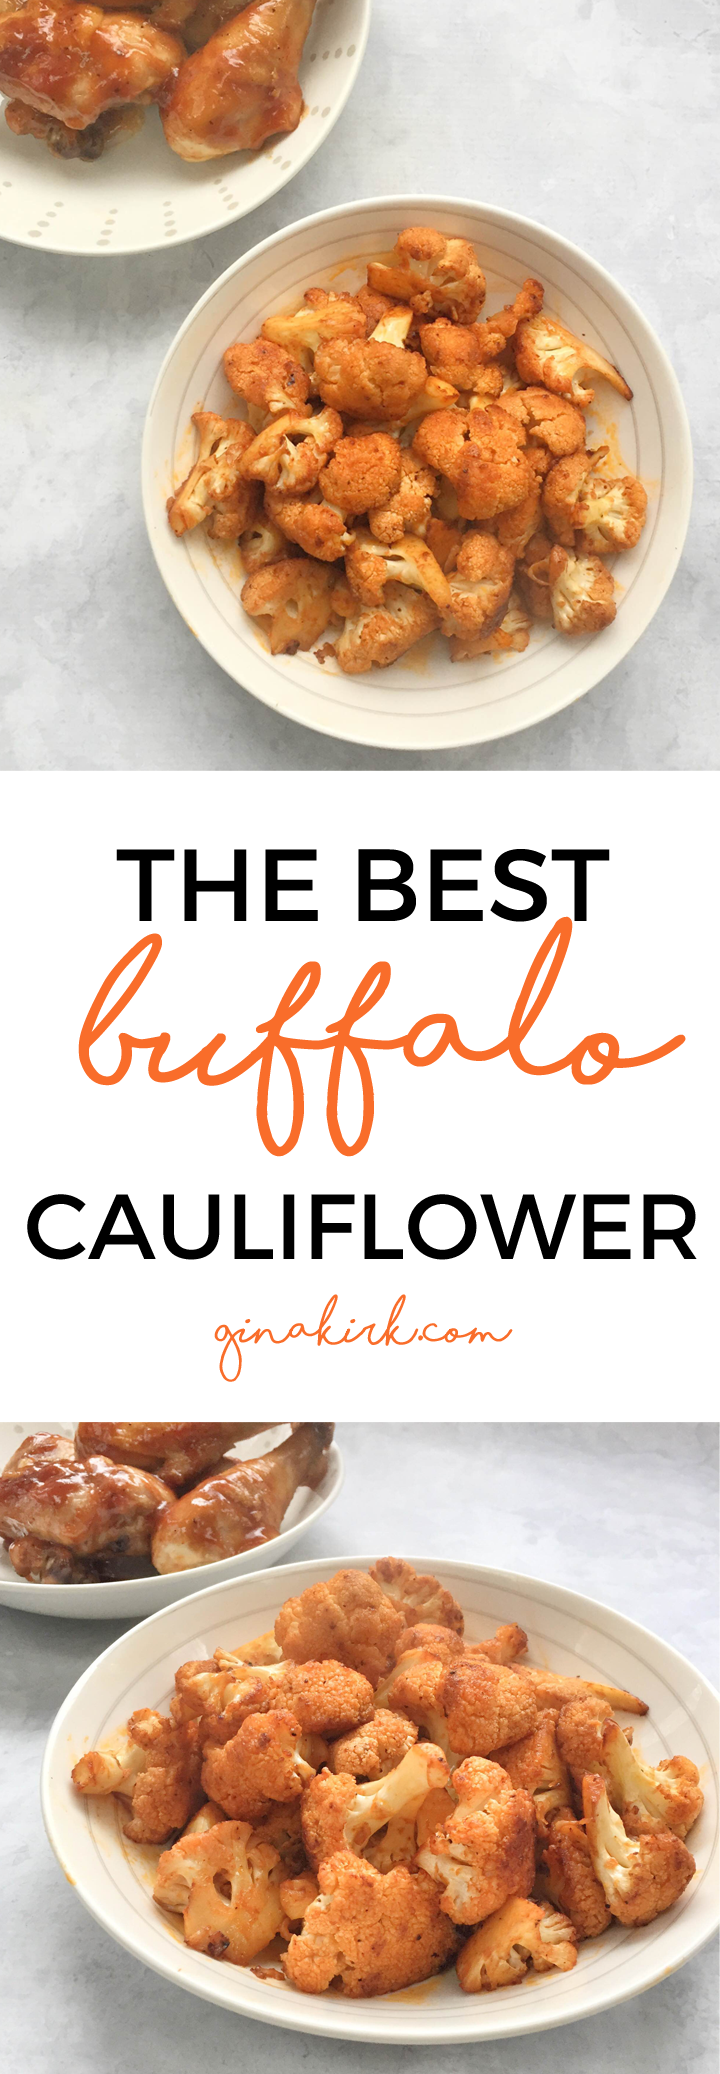 The best buffalo cauliflower | Buffalo cauliflower recipe | Easy buffalo cauliflower | GinaKirk.com @ginaekirk